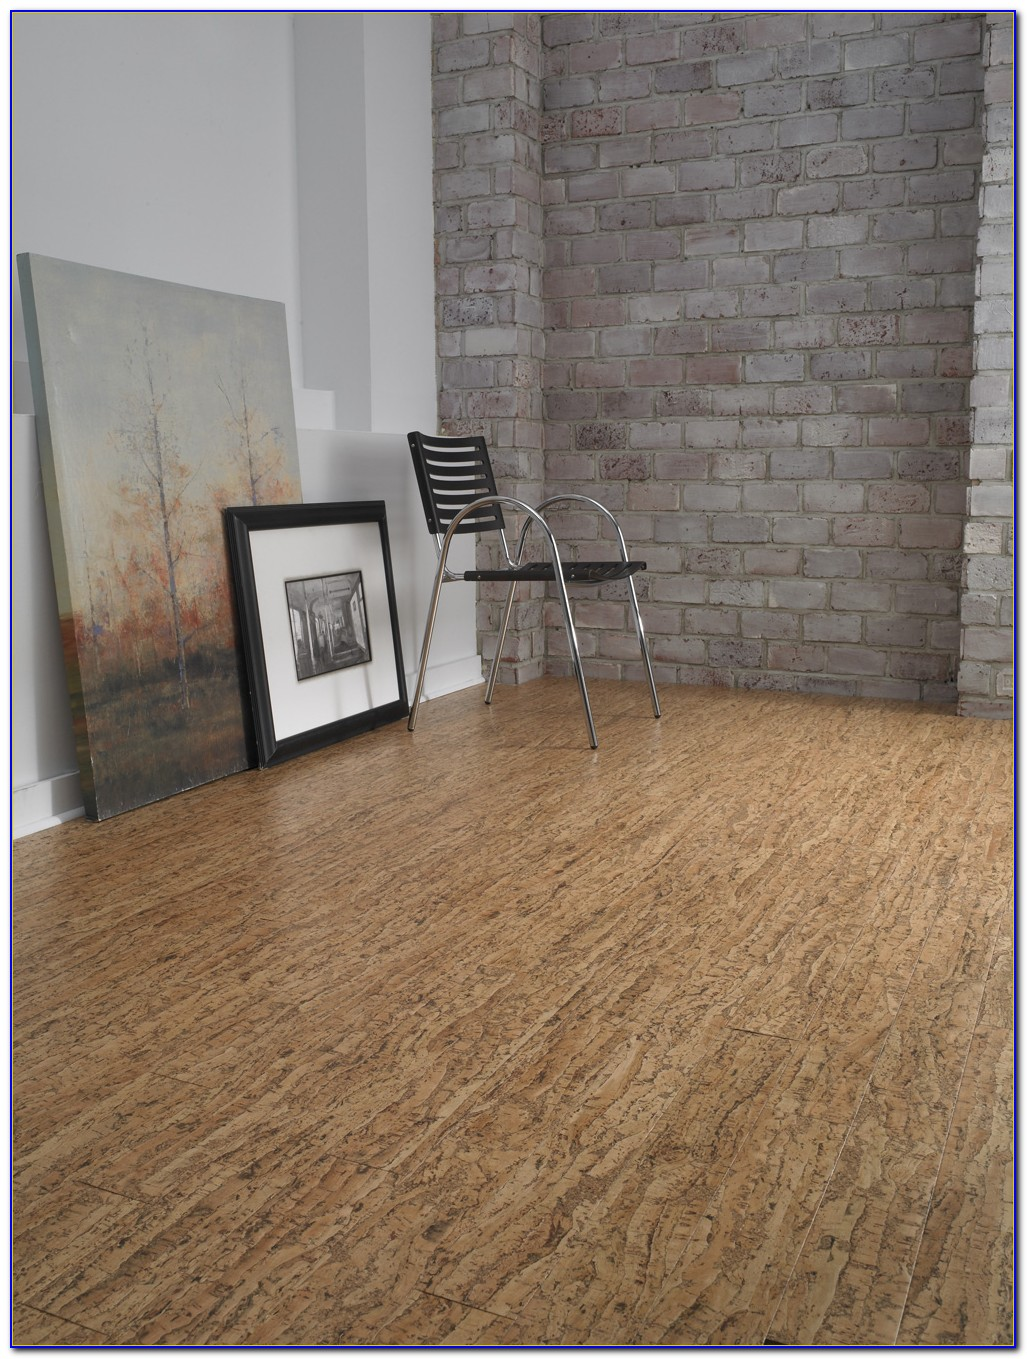 Cleaning Cork Floors With Steam Mop